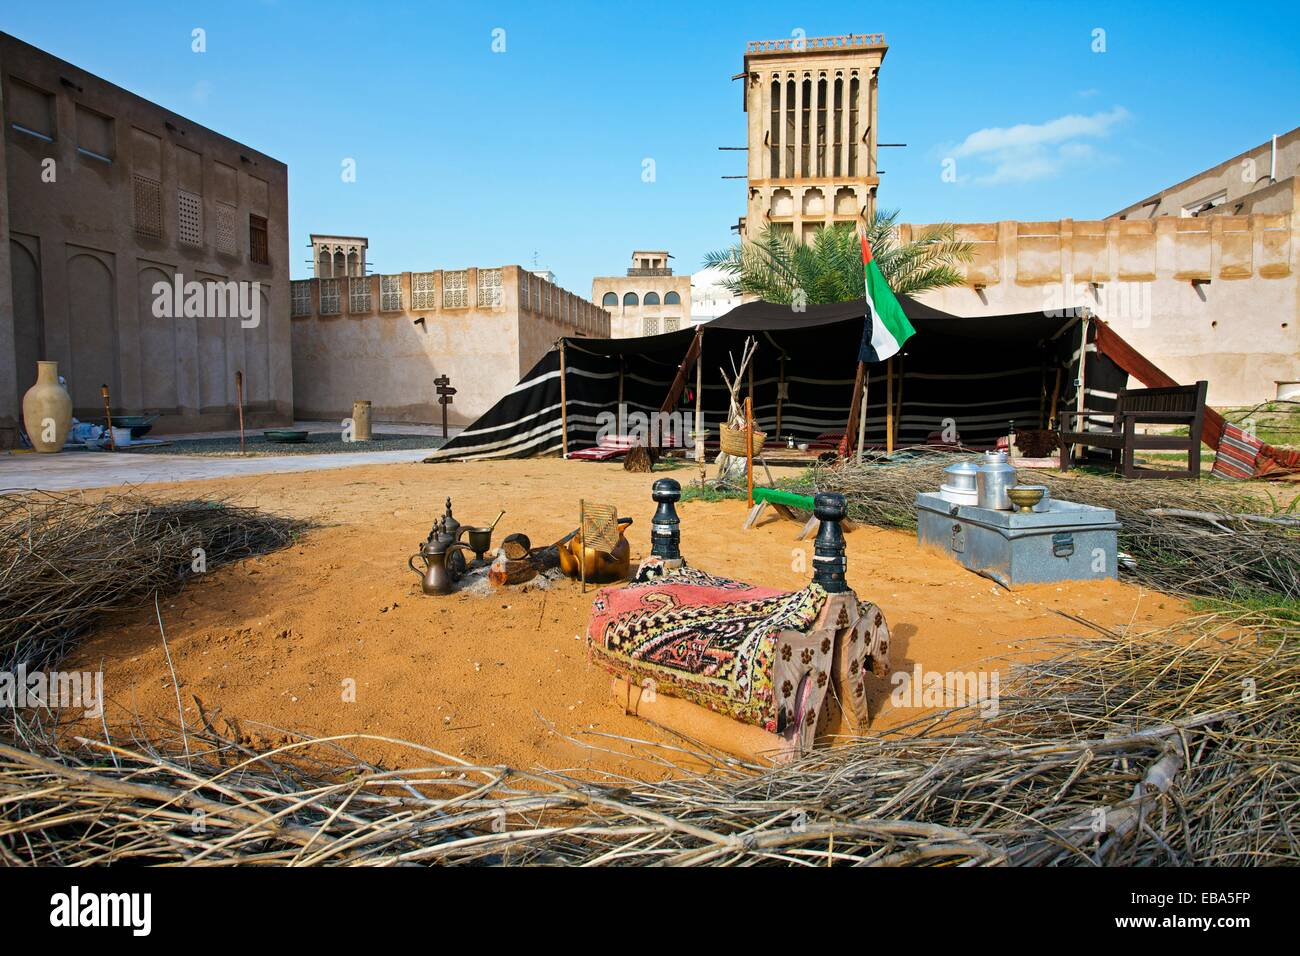 Traditional Bedouin tent in Heritage Village Dubai City Dubai United Arab Emirates. & Middle East Tent Village Stock Photos u0026 Middle East Tent Village ...